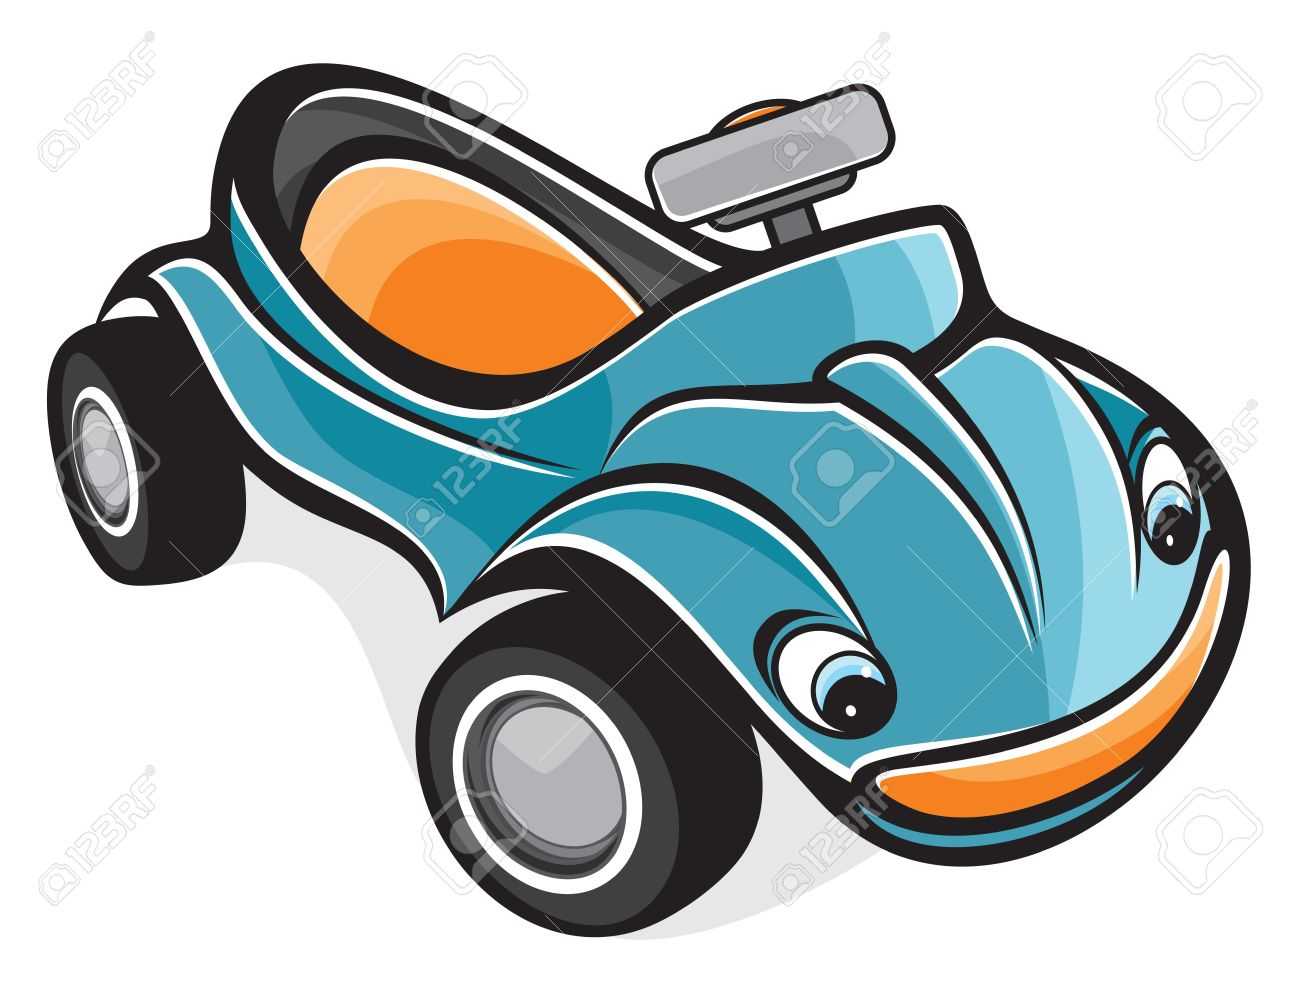 Cute Race Car Royalty Free Cliparts, Vectors, And Stock.